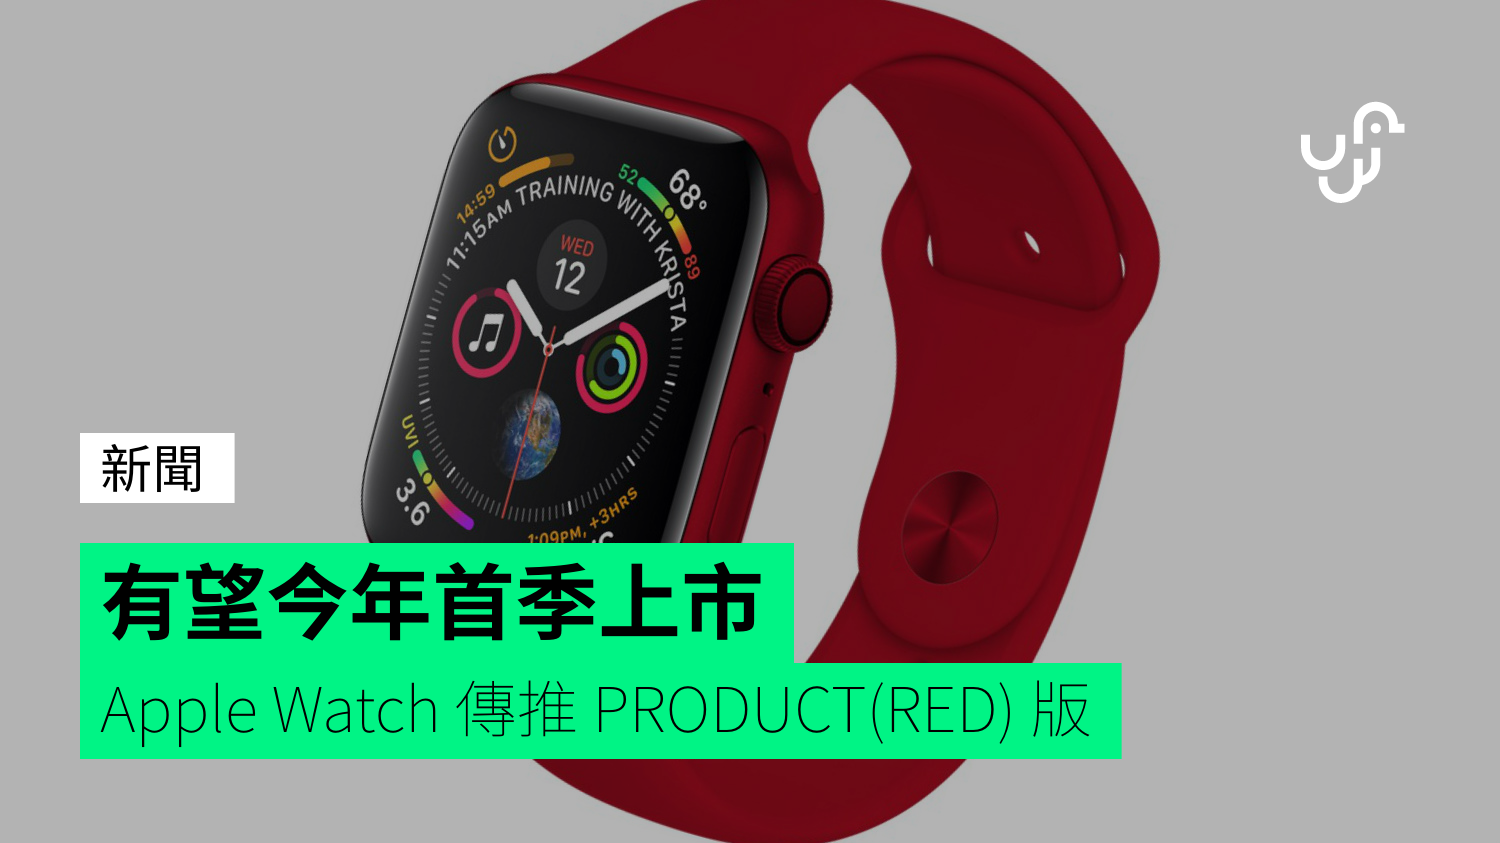 有望今年首季上市 Apple Watch Series 5 傳推 PRODUCT(RED) 版本 | 香港 unwire.hk 玩生活.樂科技